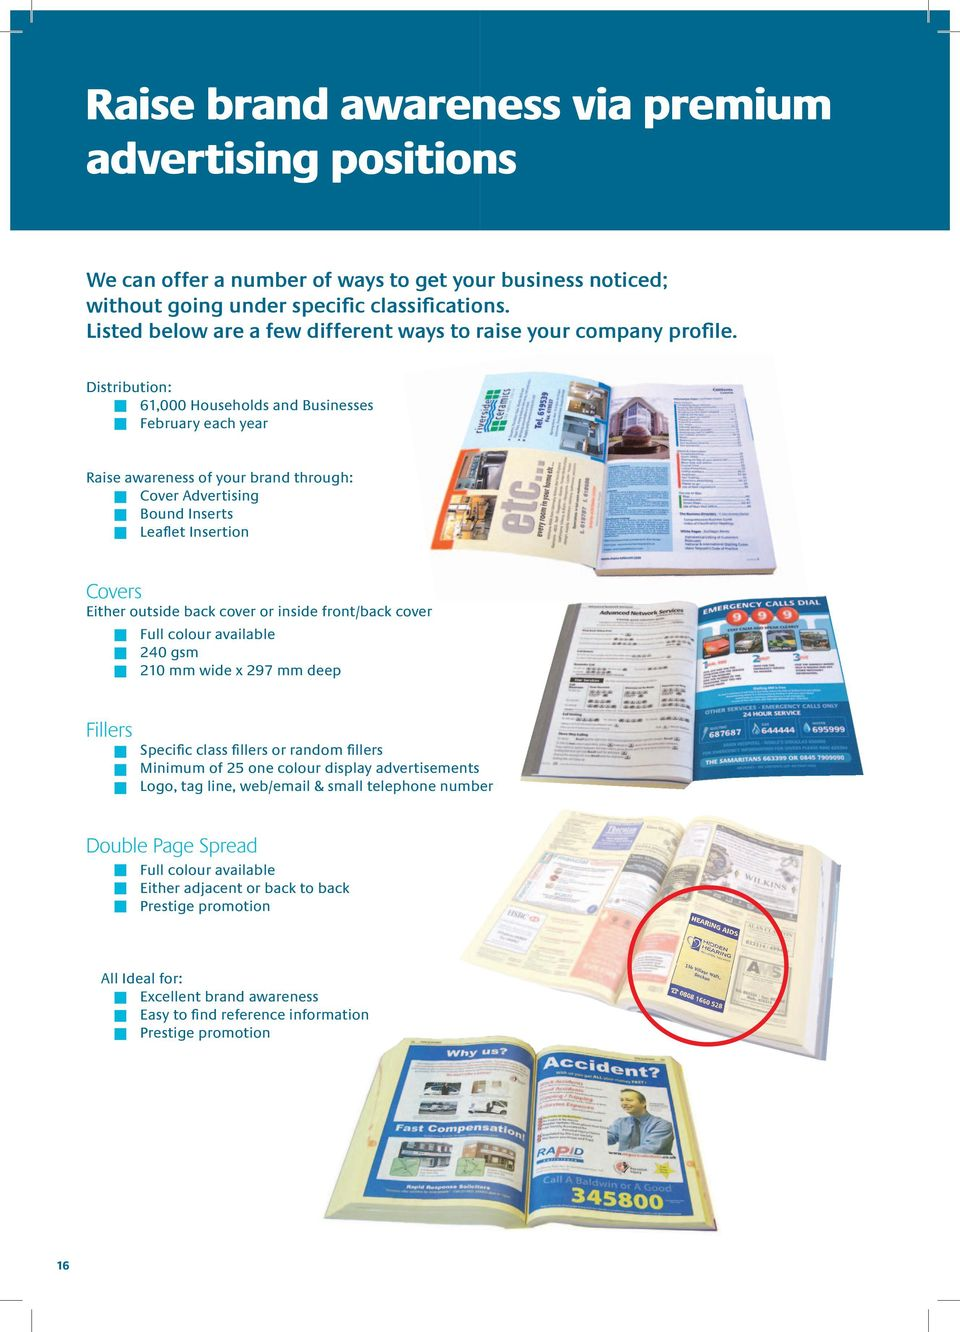 Distribution: 61,000 Households and Businesses February each year Raise awareness of your brand through: Cover Advertising Bound Inserts Leaflet Insertion Covers Either outside back cover or inside